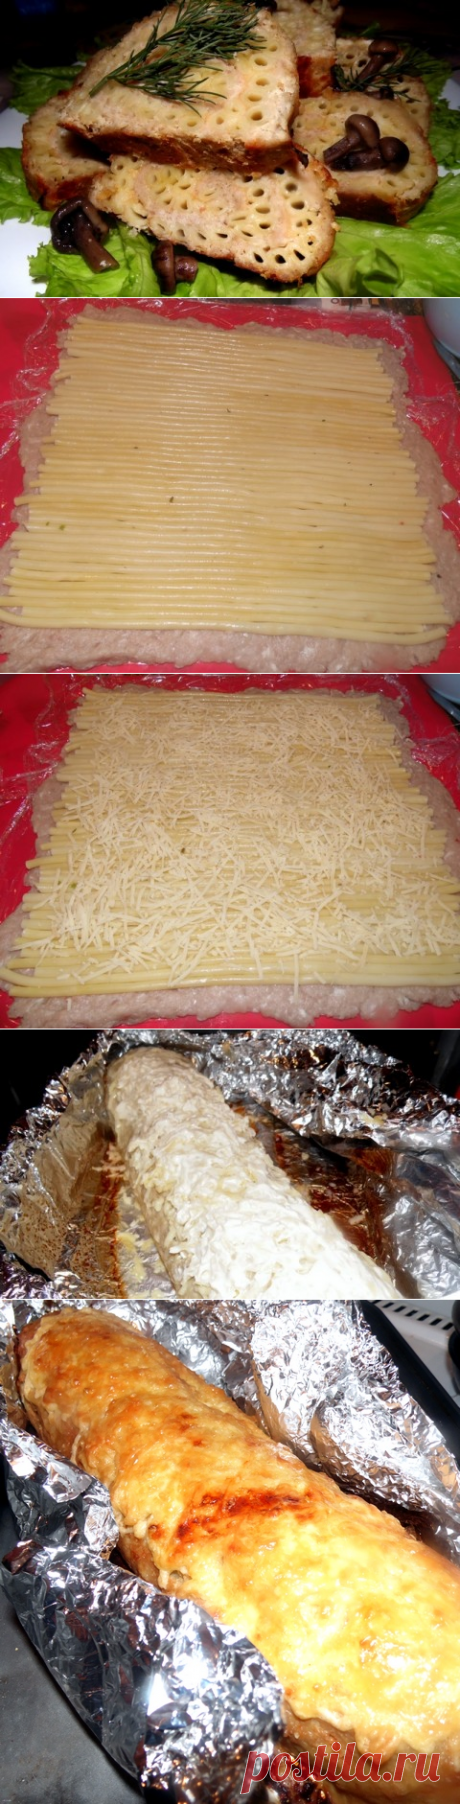 Two in one - cutlets with macaroni in roll